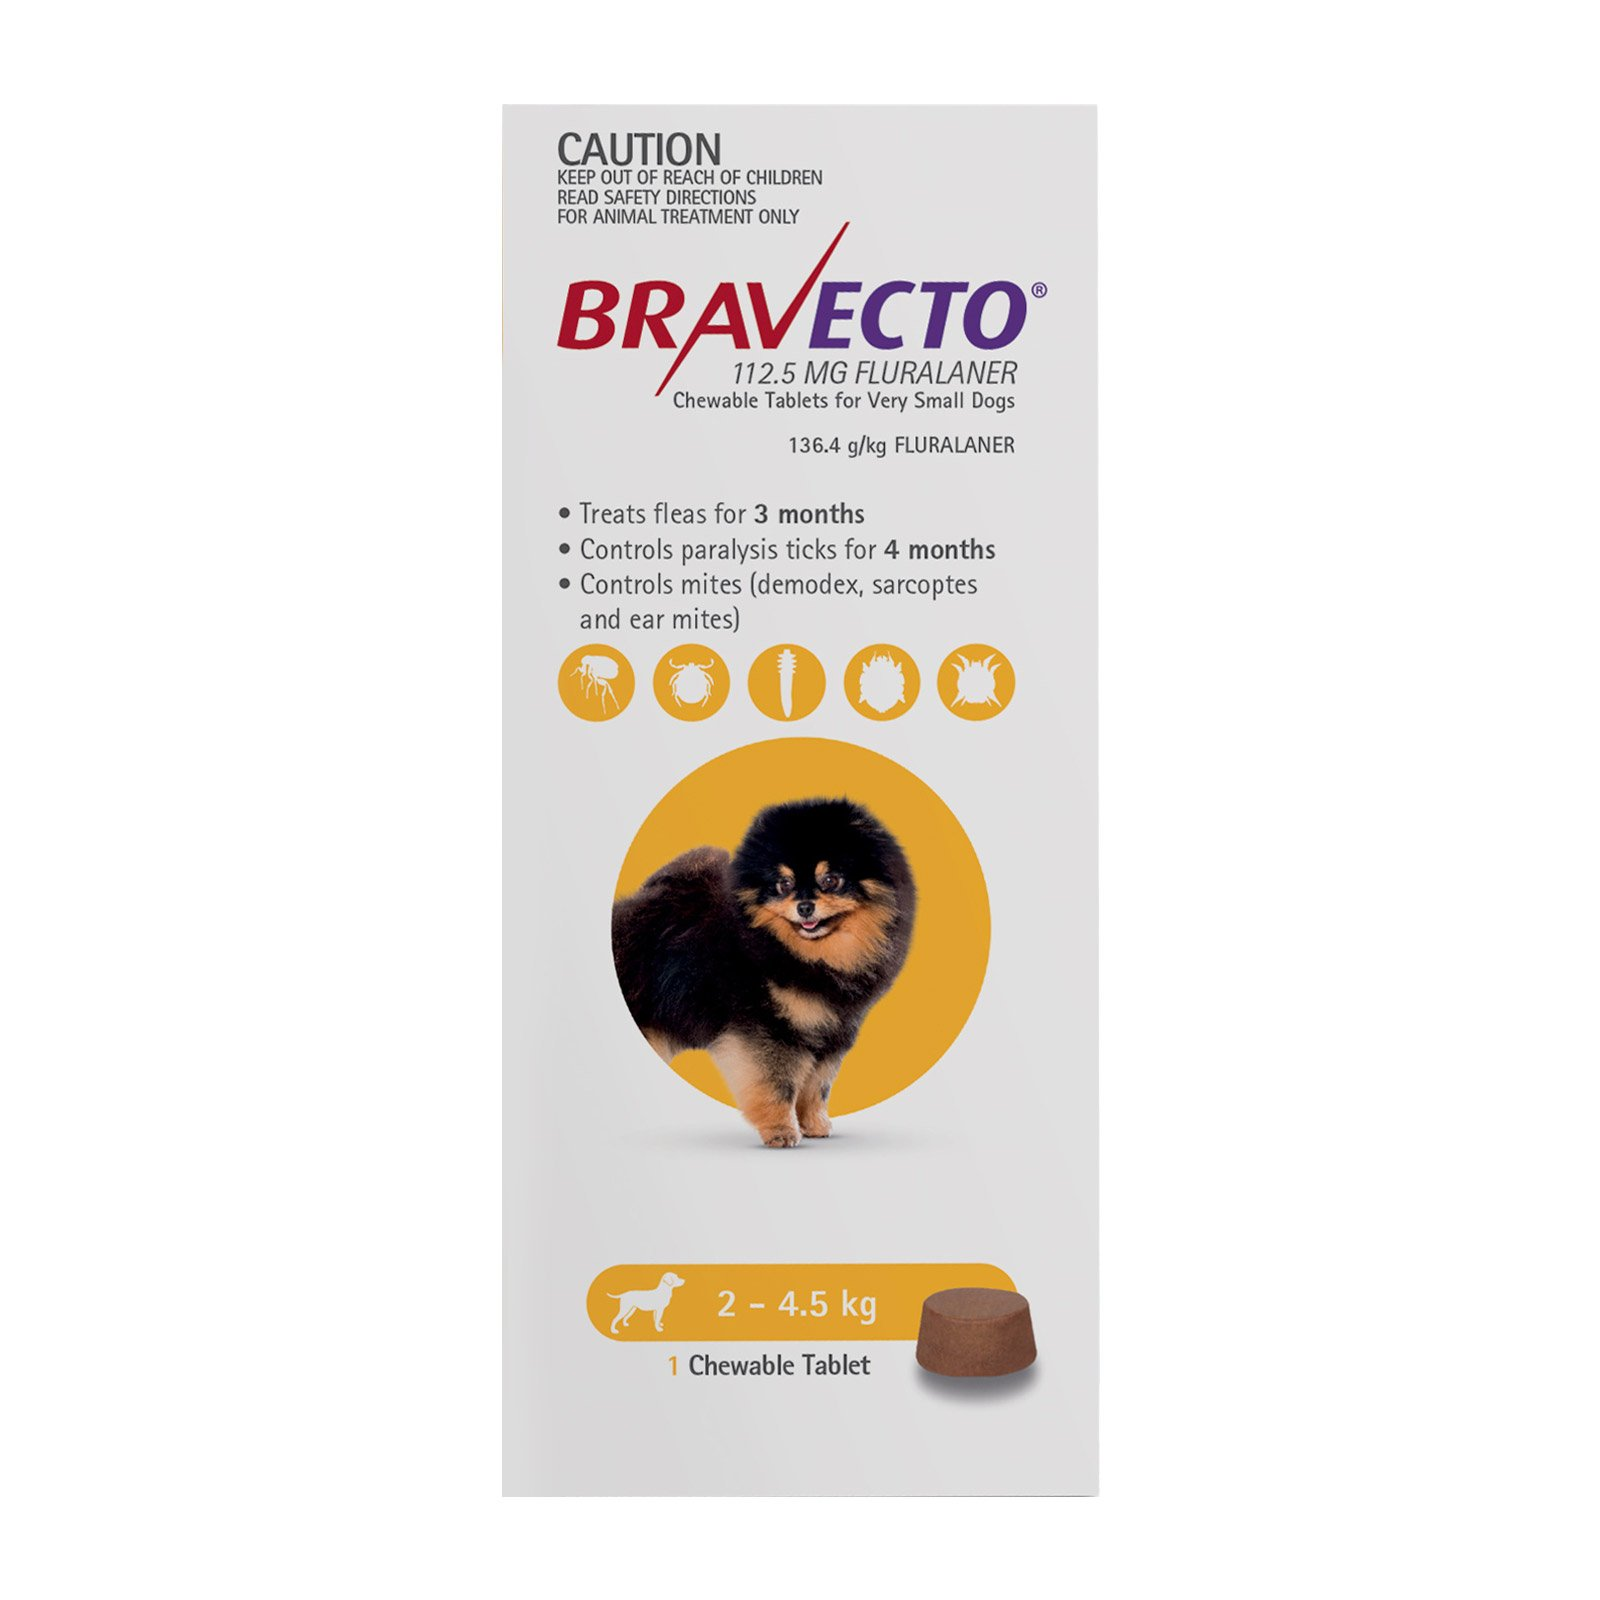 Bravecto For Toy Dogs 2-4.5Kg (Yellow)